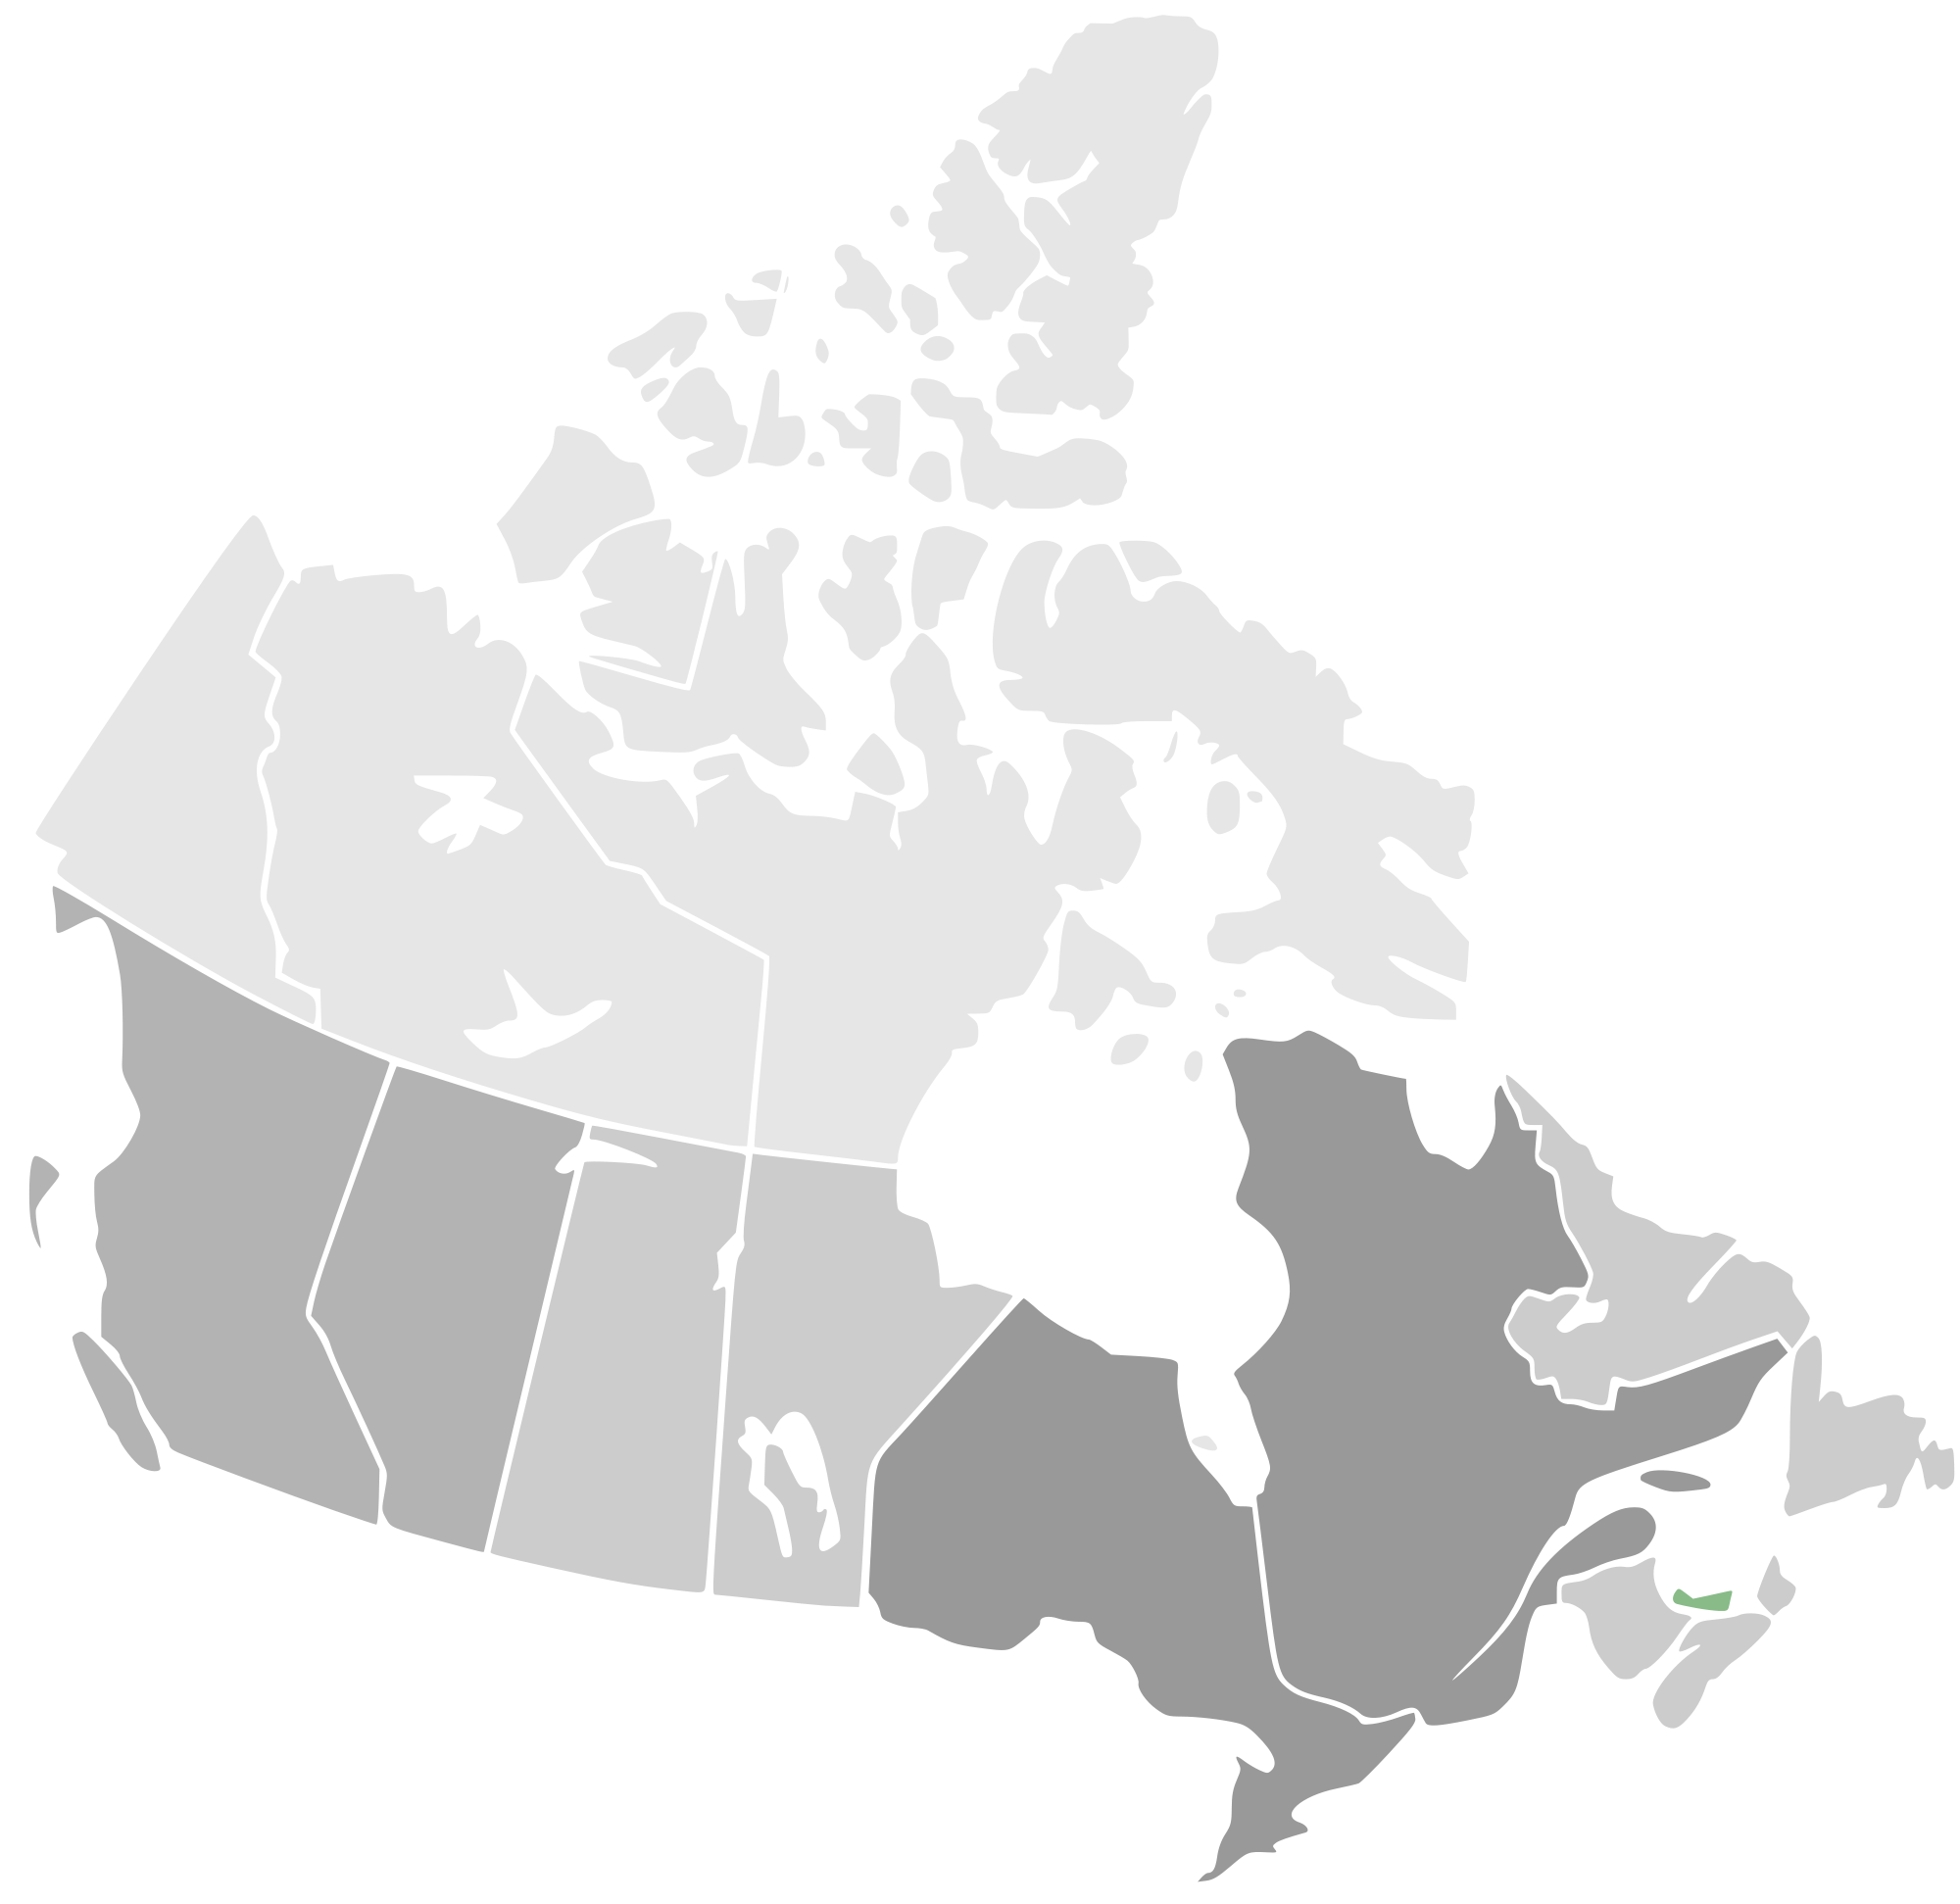 Map Of Canada Free.Canada Map Vector At Getdrawings Com Free For Personal Use Canada